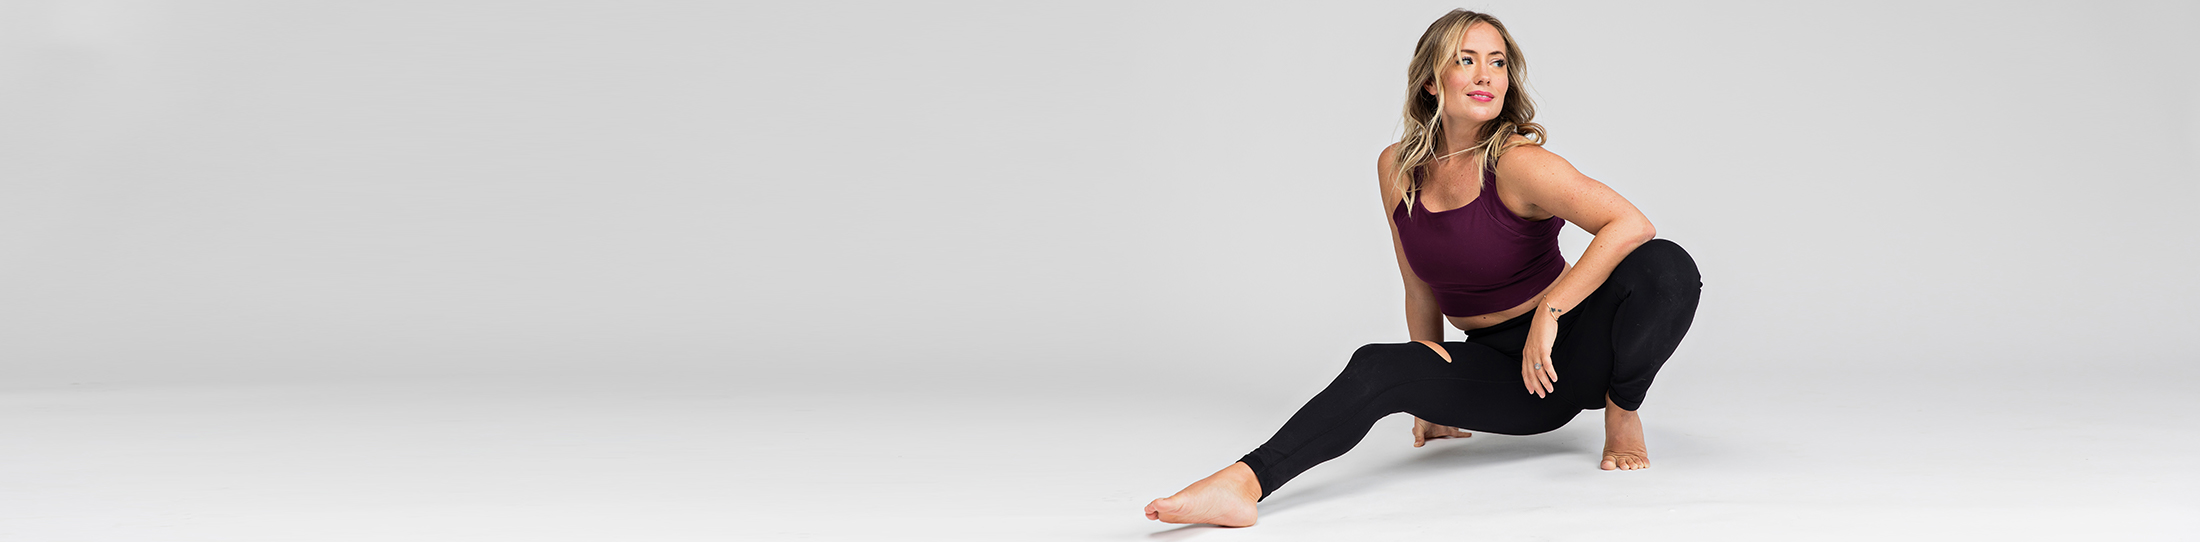 plus-size-yoga-clothes-banner.jpg